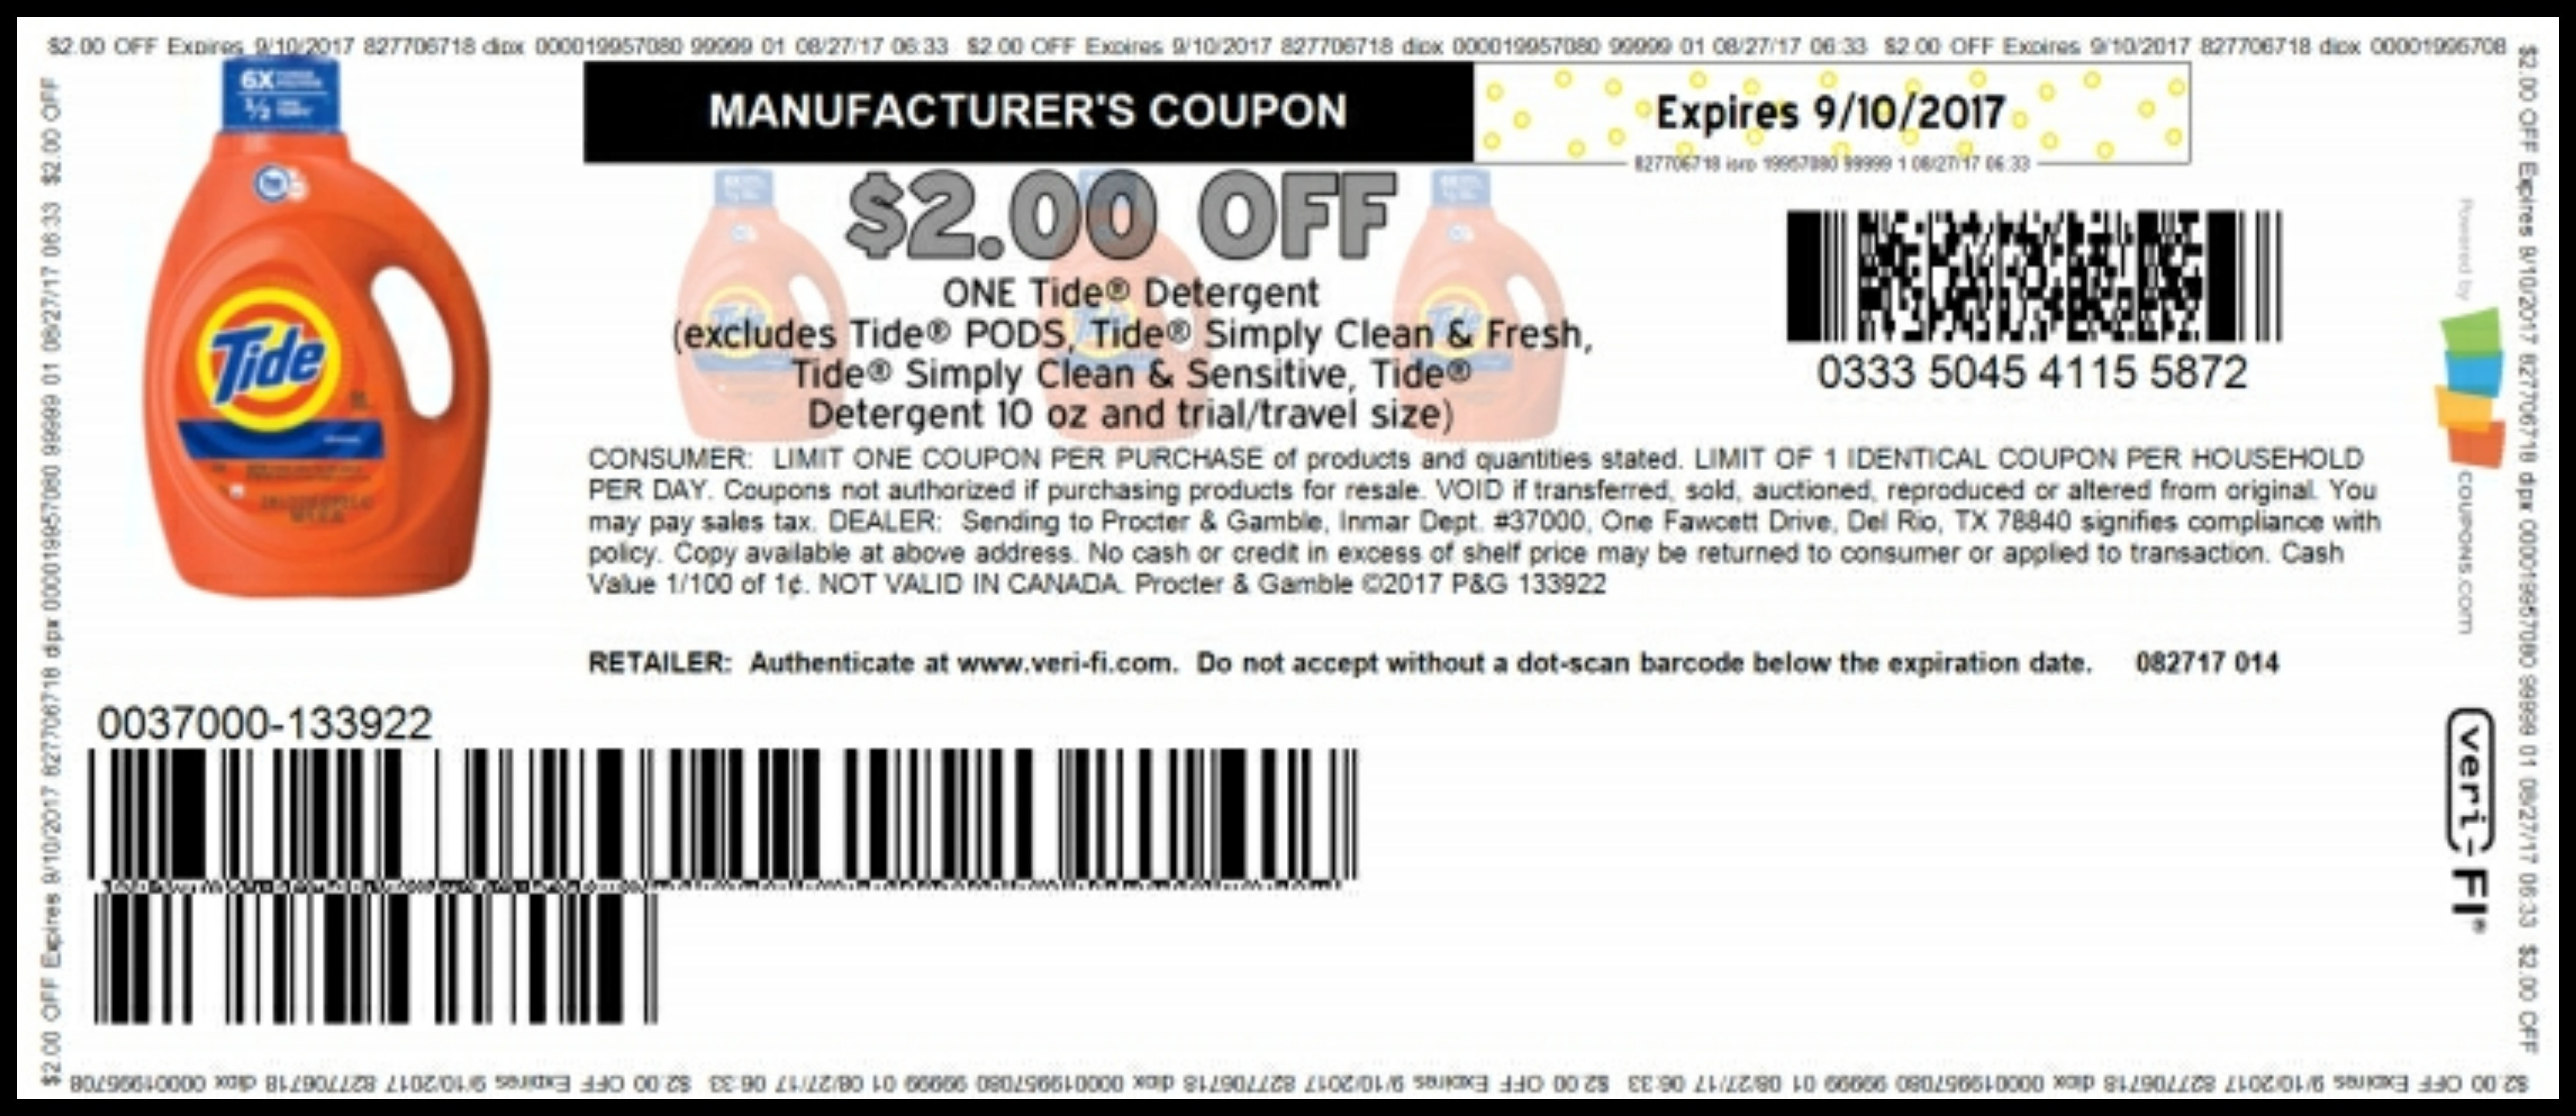 Uncategorized Archives - Cfl Coupon Moms - Free Printable Chinet Coupons